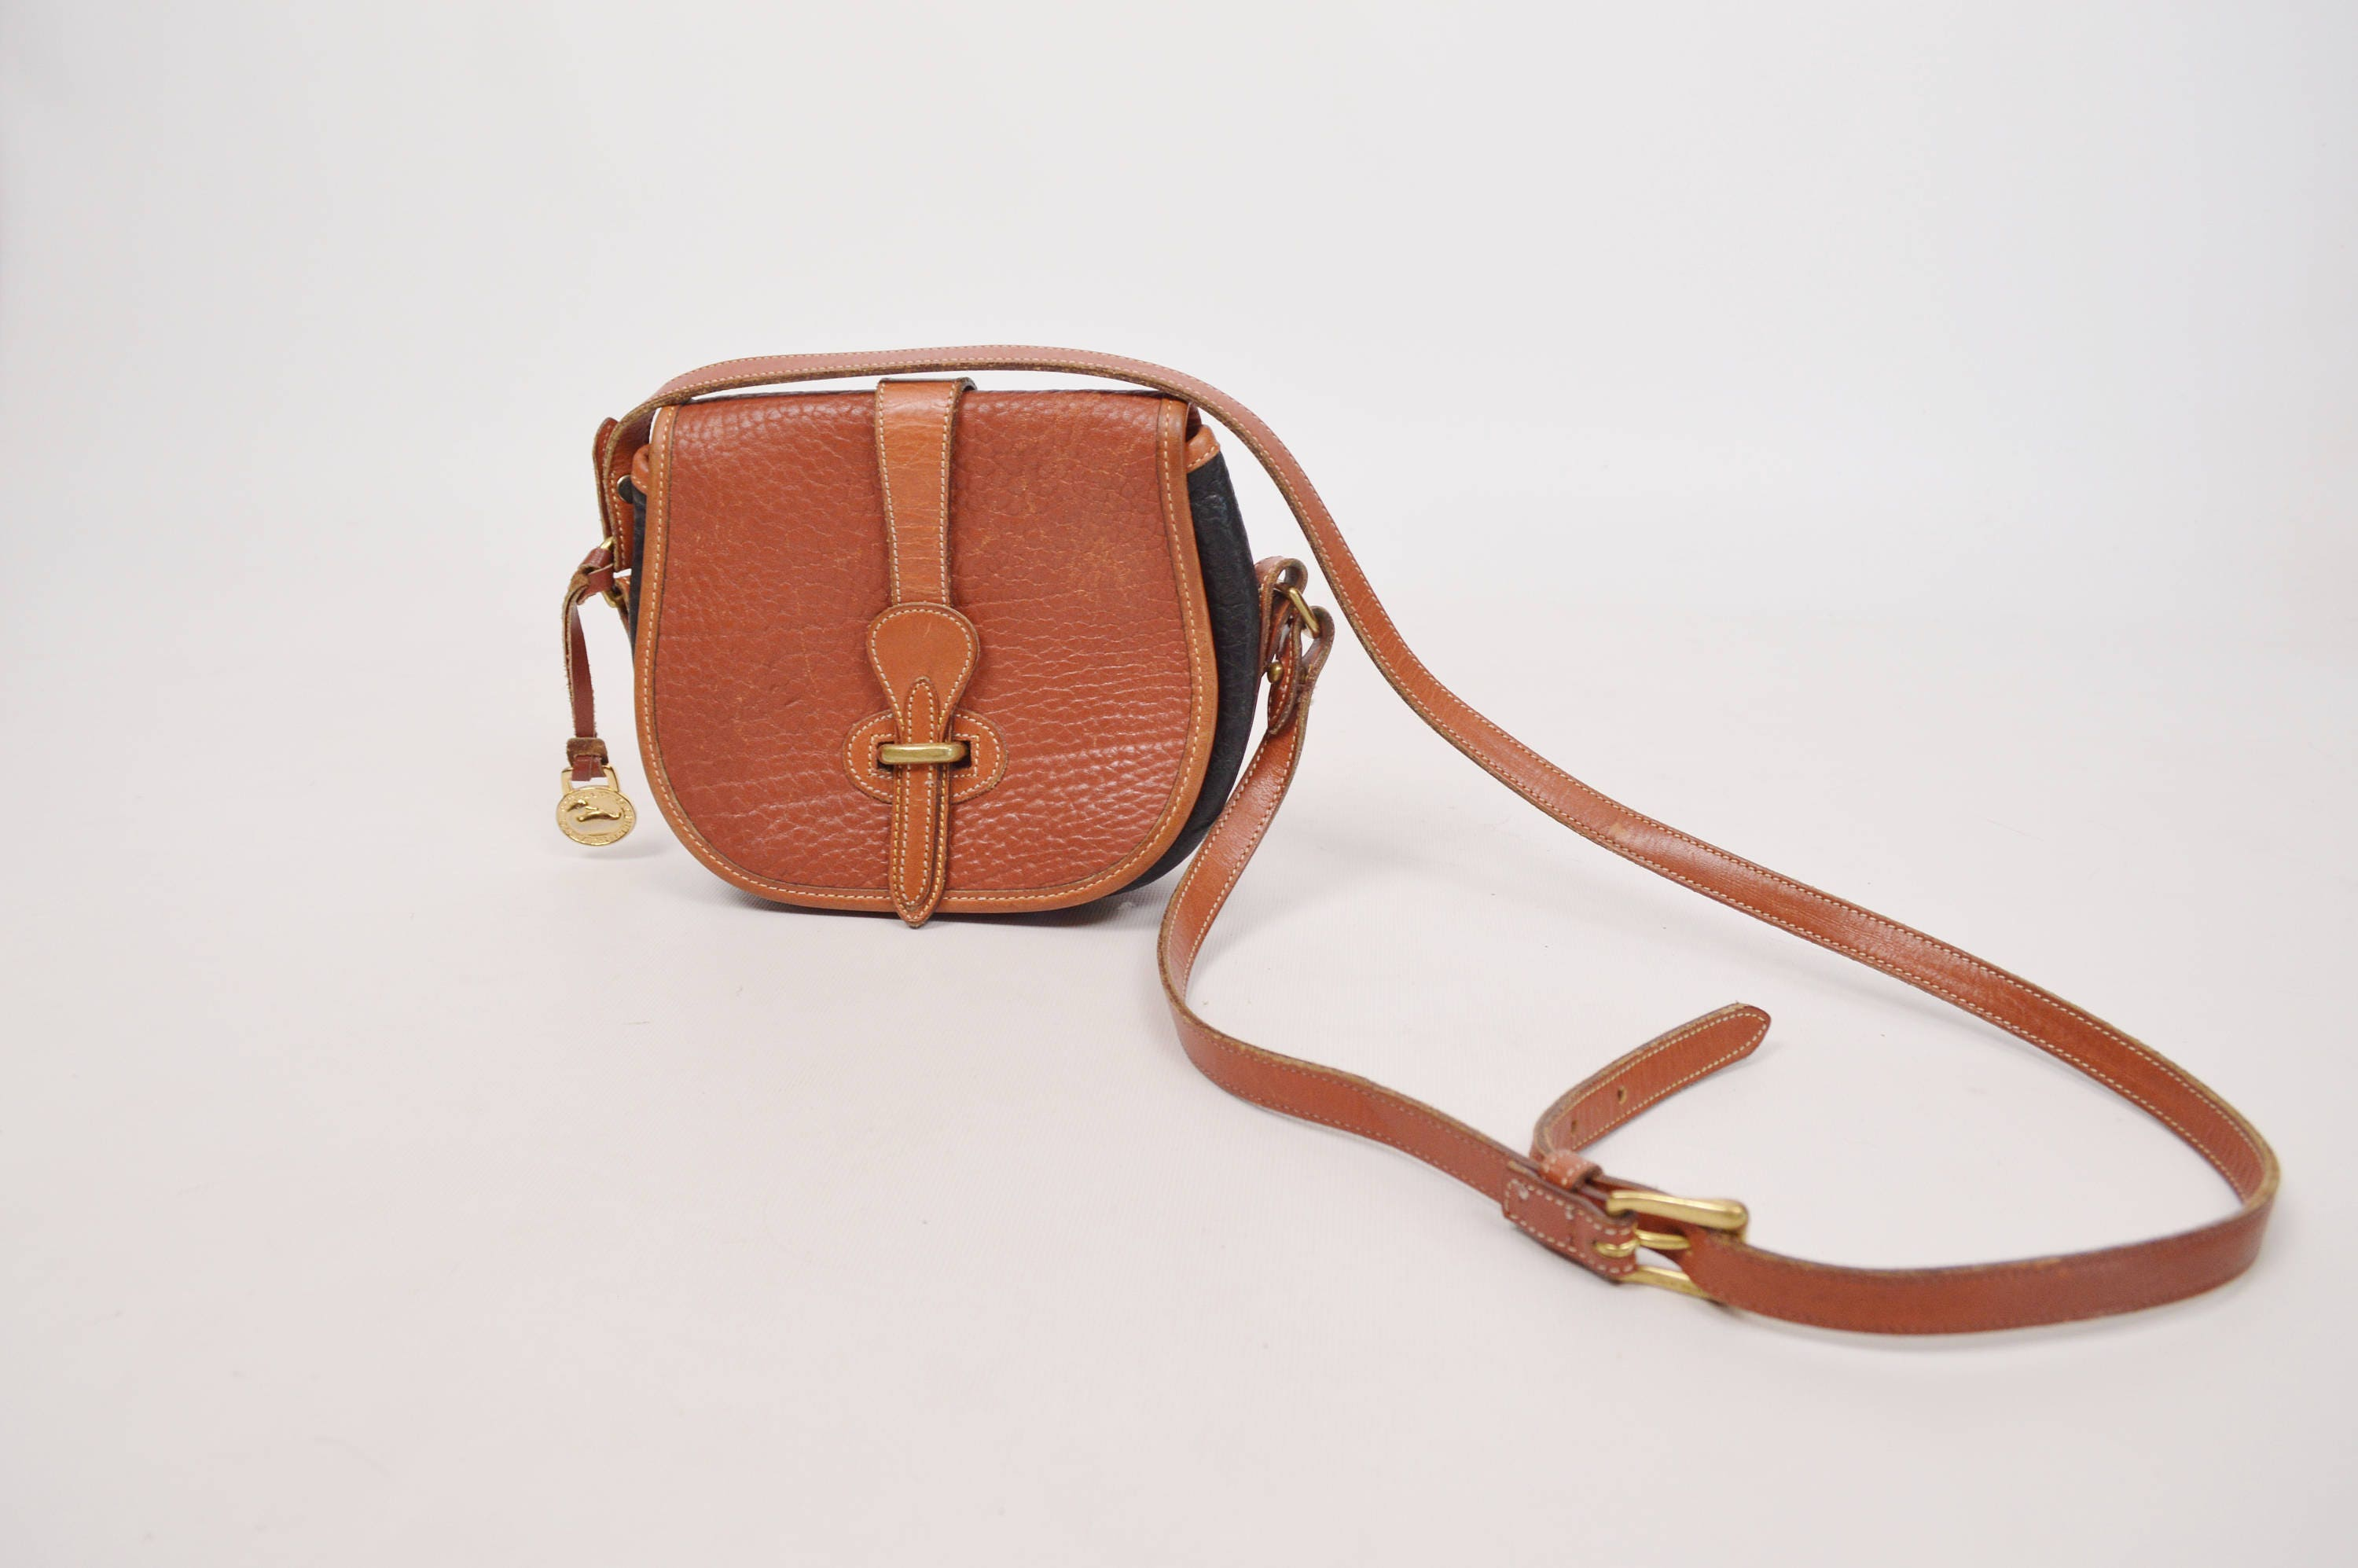 76ae3aab180a RARE Tri-color Dooney   Bourke Equestrian Tack Bag All Weather ...